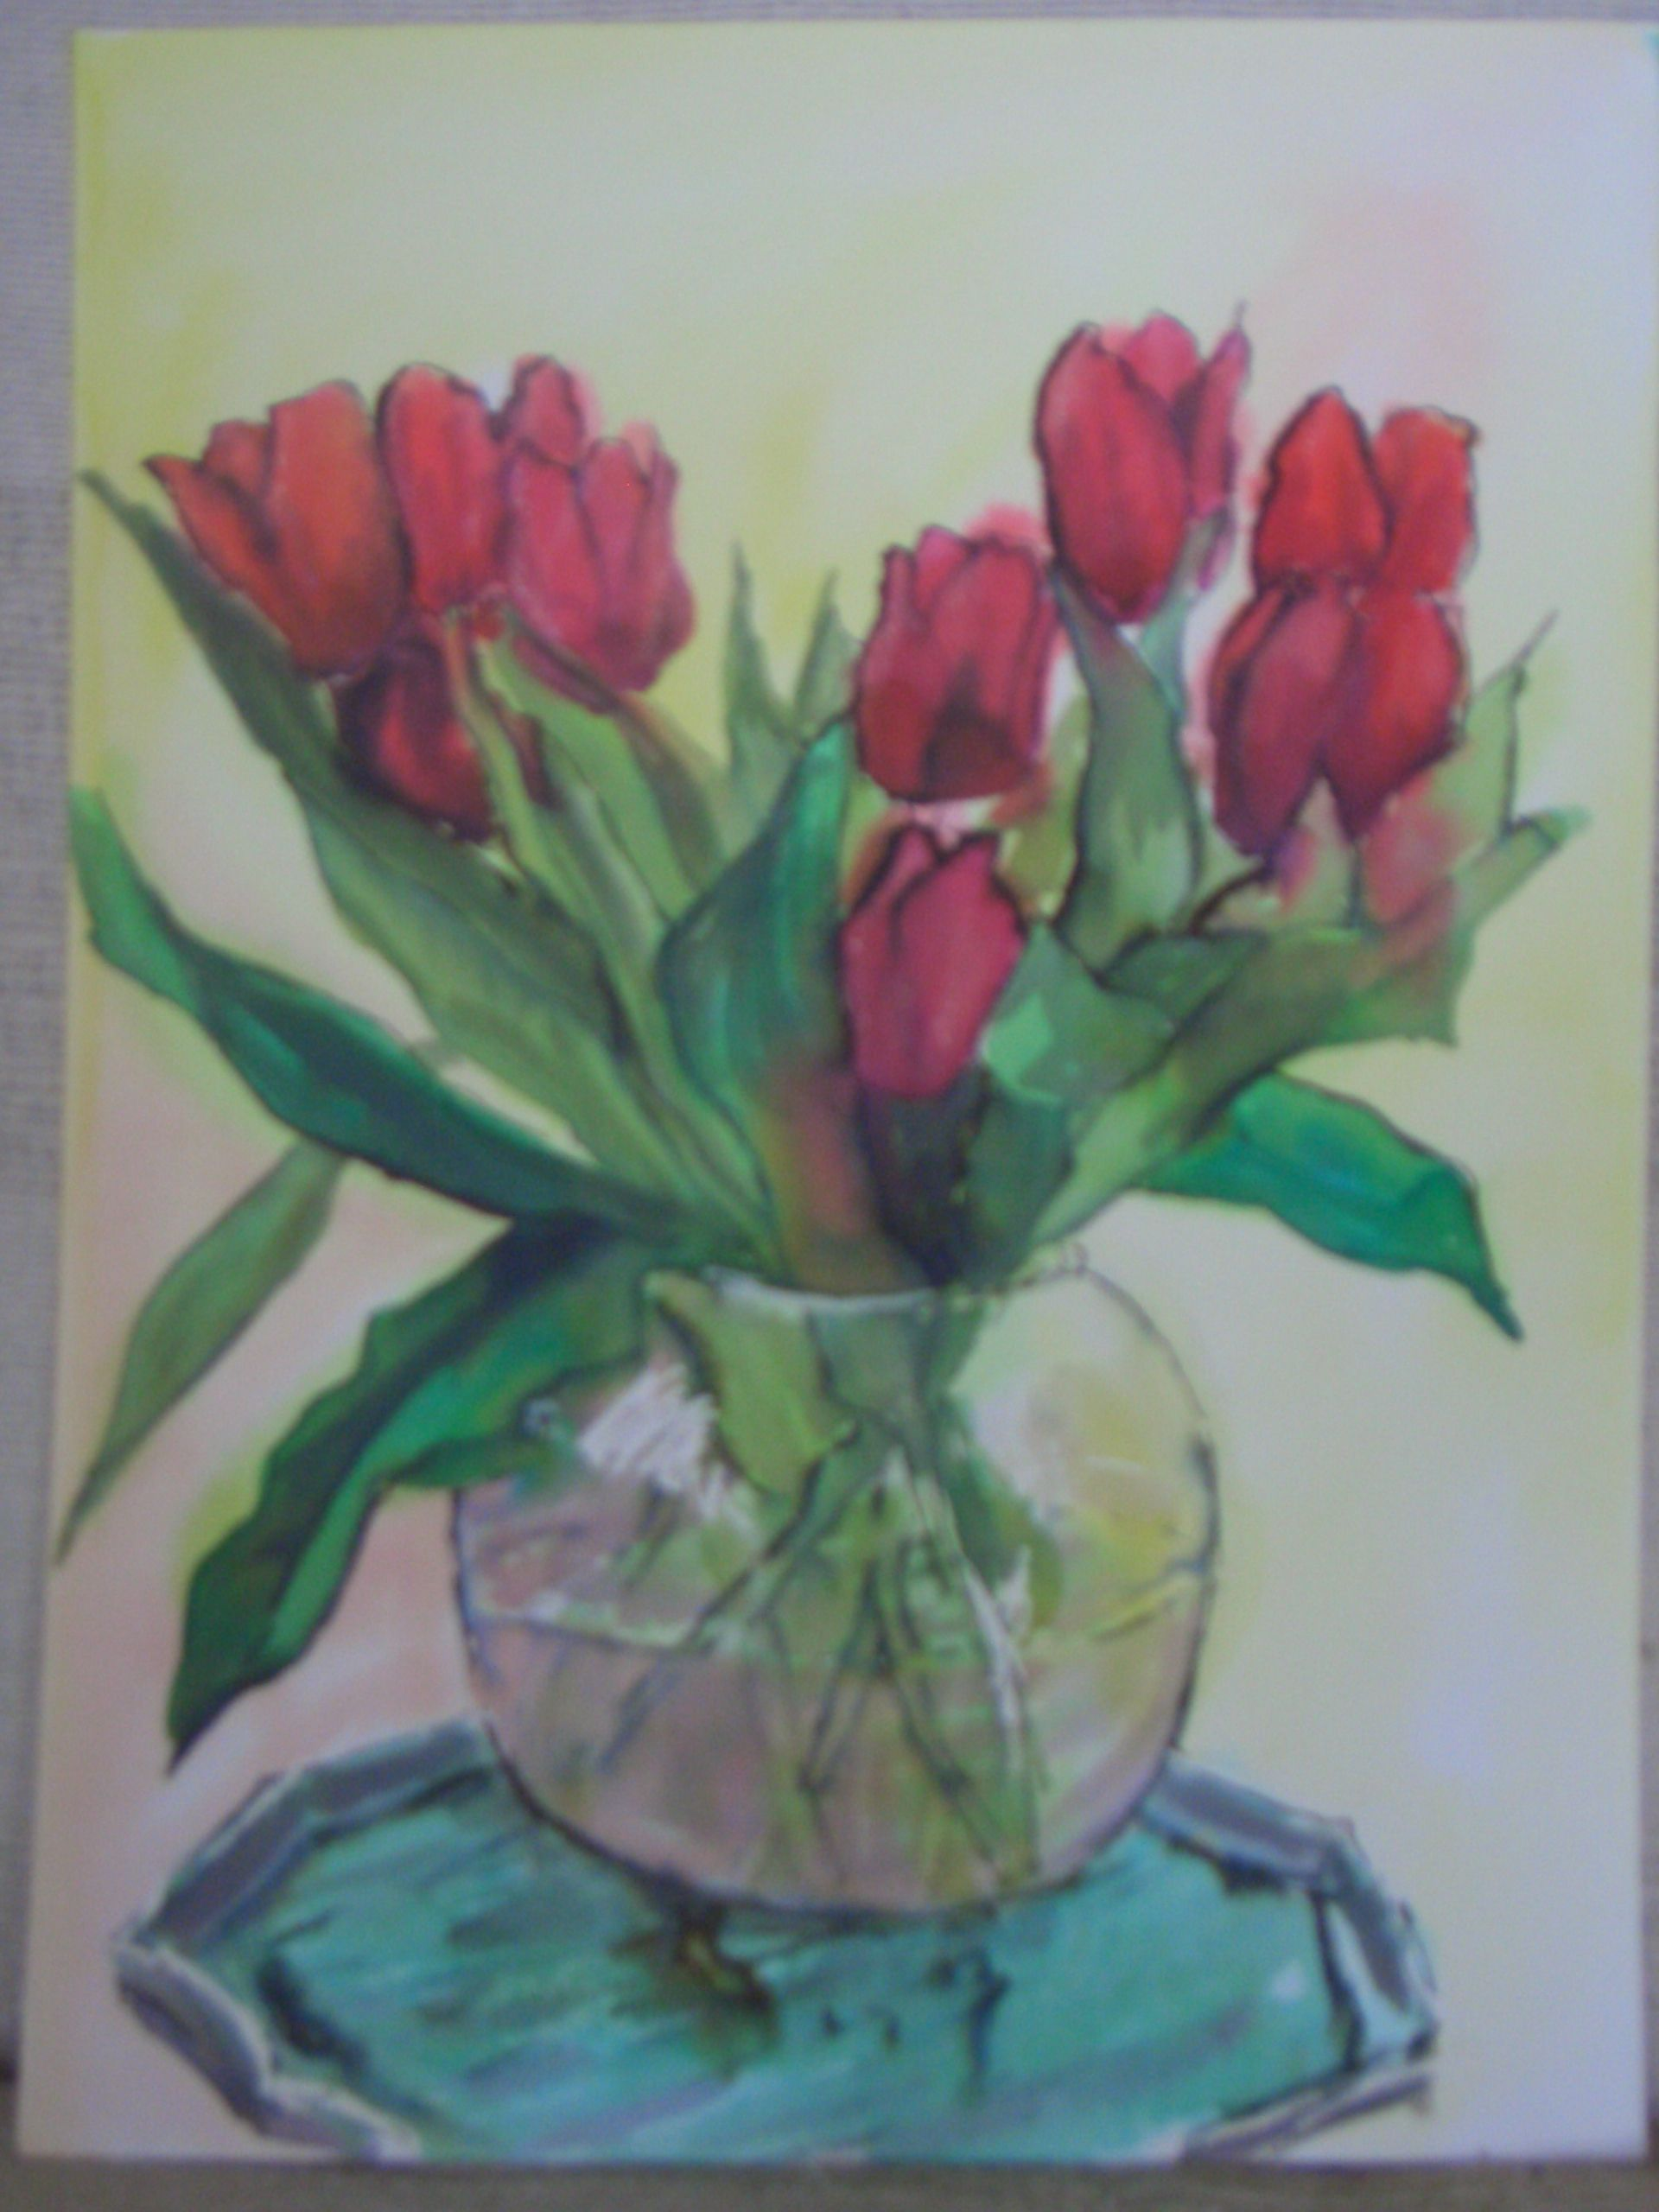 Red tulips.   Water soluable inks on heavy watercolour paper